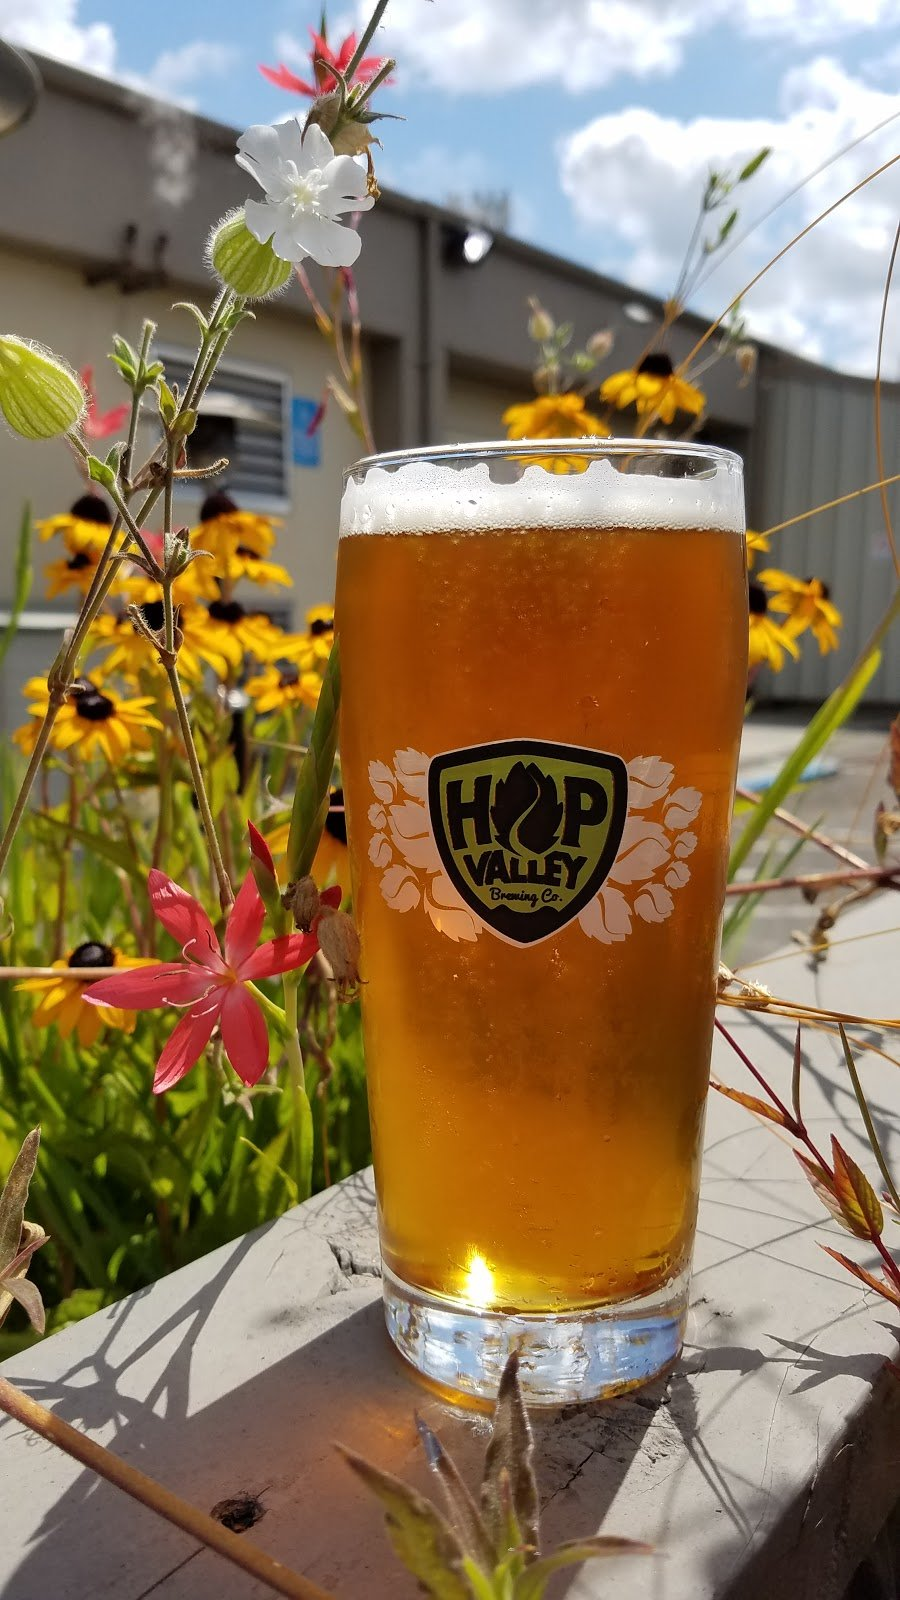 Hop Valley Brewing Co